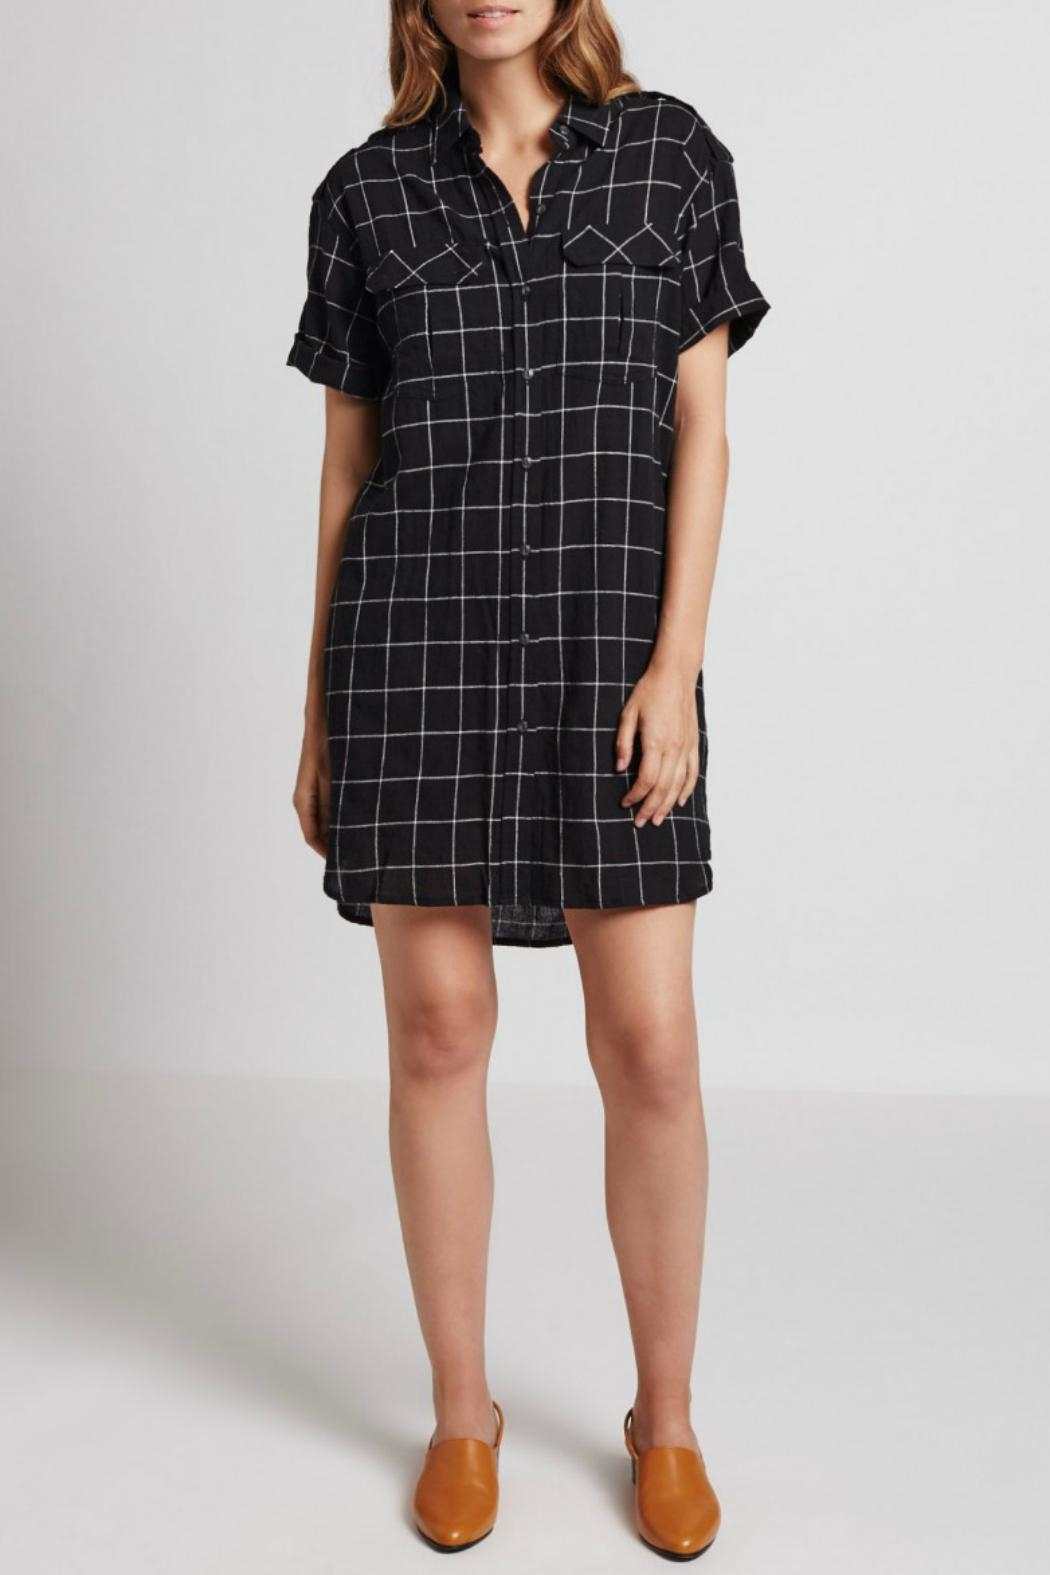 DRESSES - Short dresses Current Elliott XKPrhqEdj